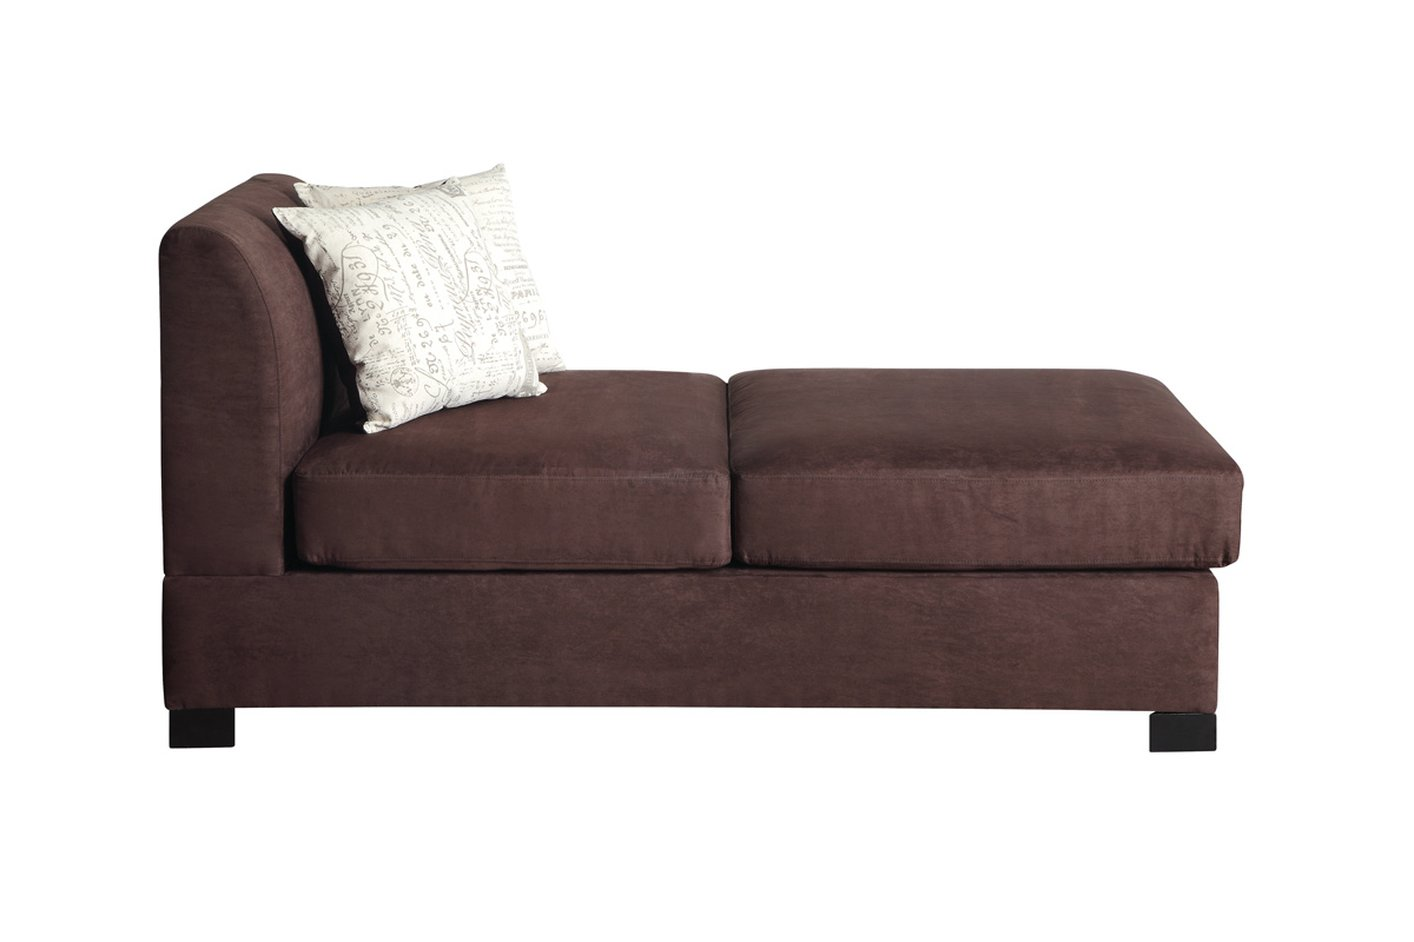 poundex nia f7979 brown fabric chaise lounge steal a sofa furniture outlet los angeles ca. Black Bedroom Furniture Sets. Home Design Ideas